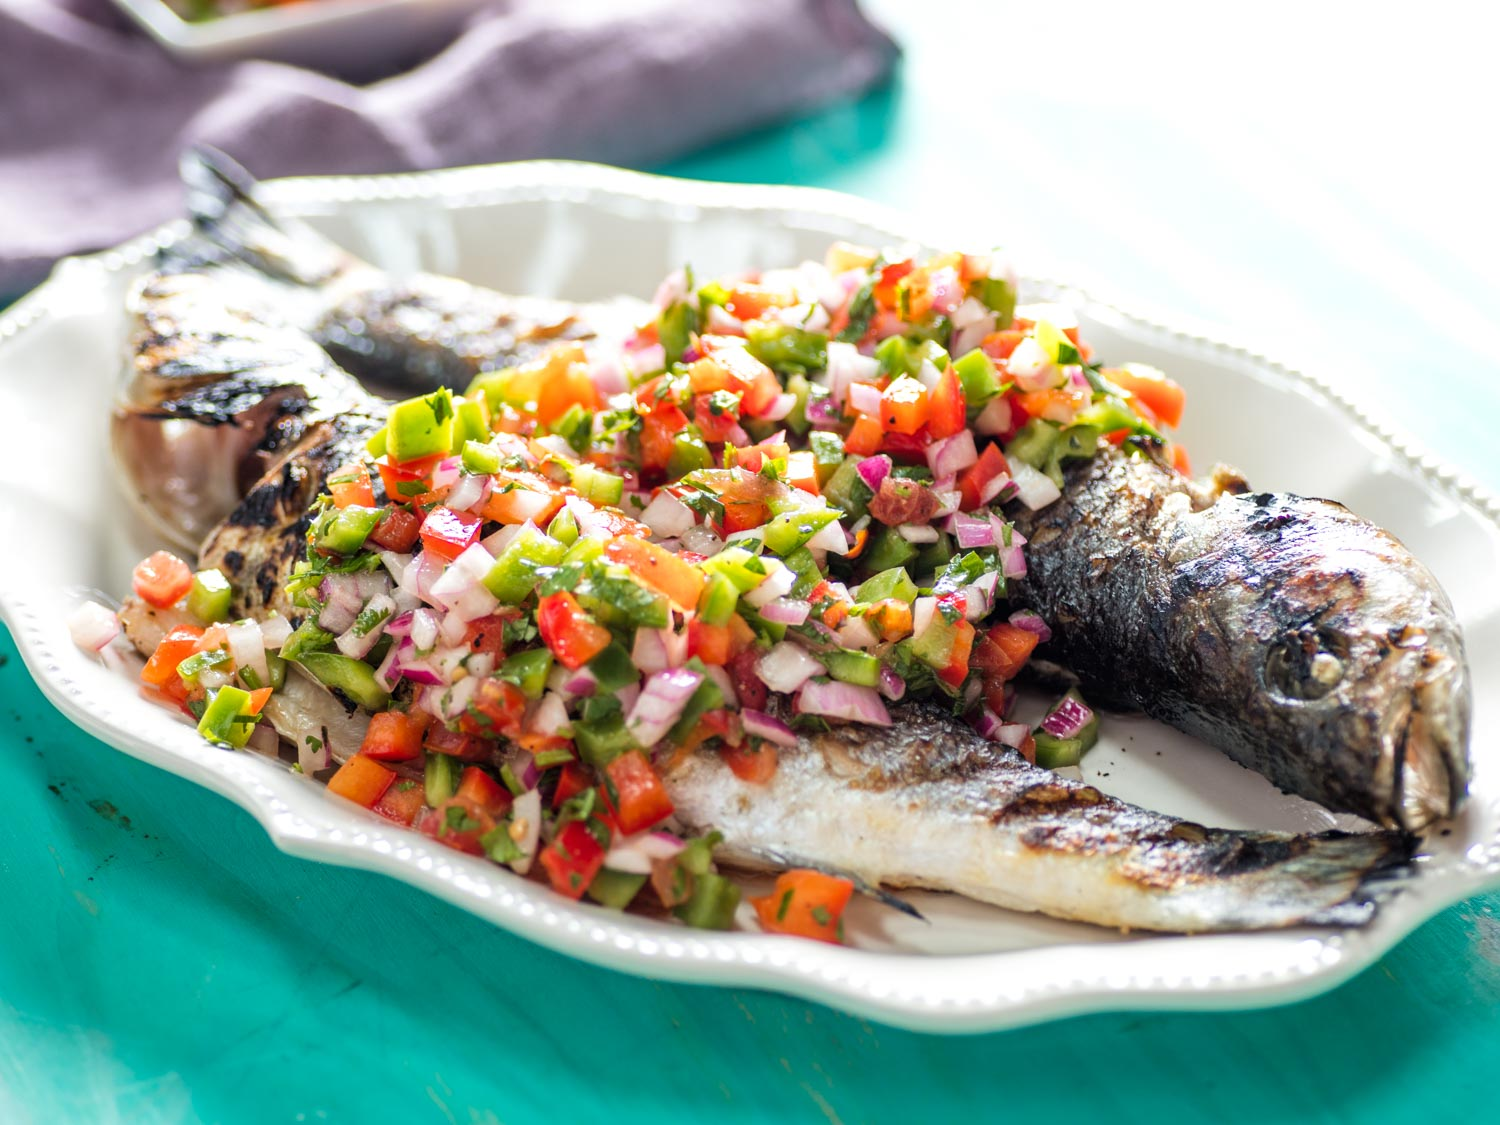 Grilled Whole Fish With Molho à Campanha (Brazilian Pico de Gallo)